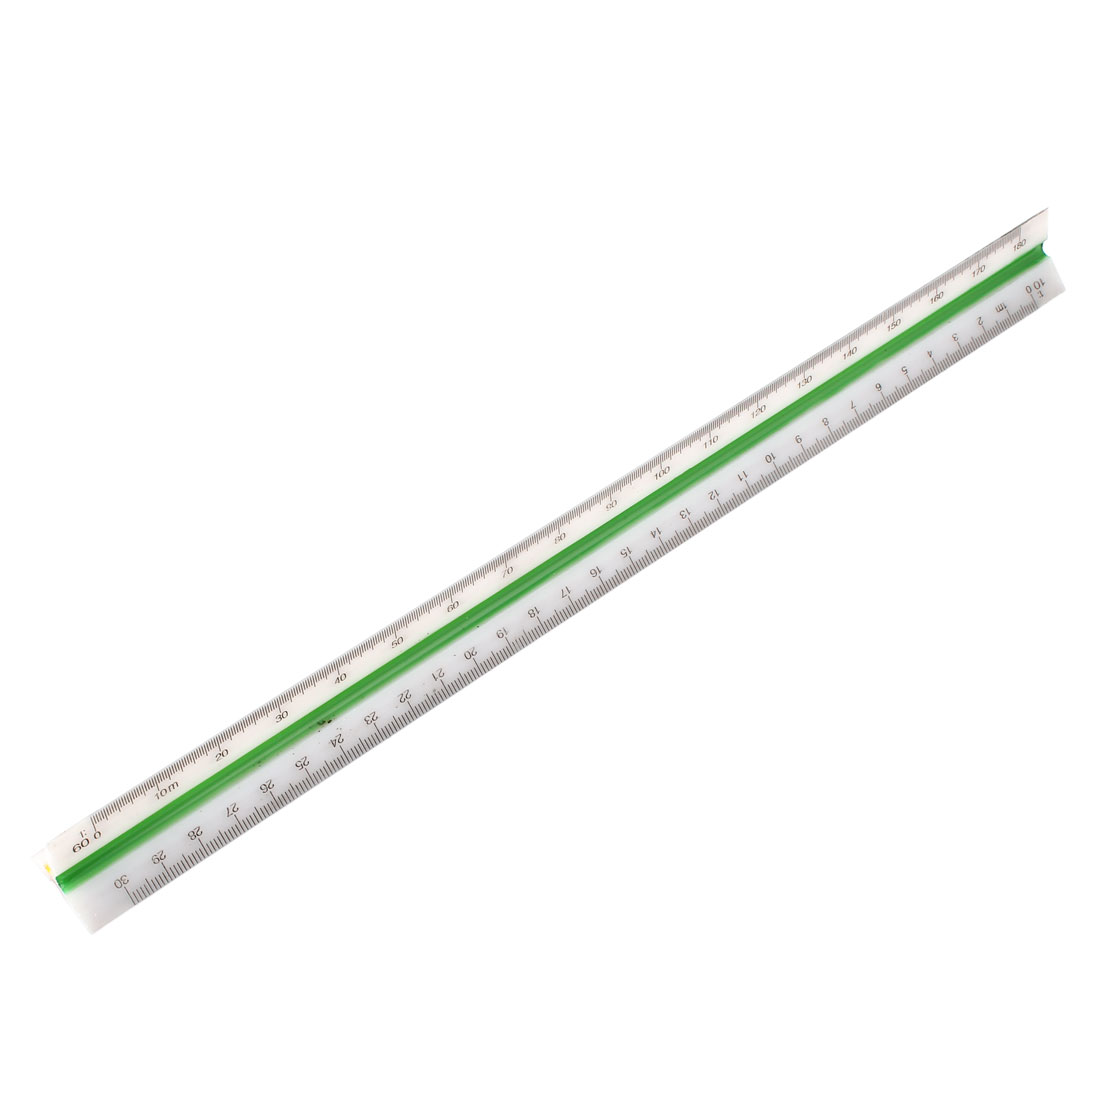 Plastic Architects Engineering Triangular Scale Ruler 1:10 1:20 1:30 1:40 1:50 1:60